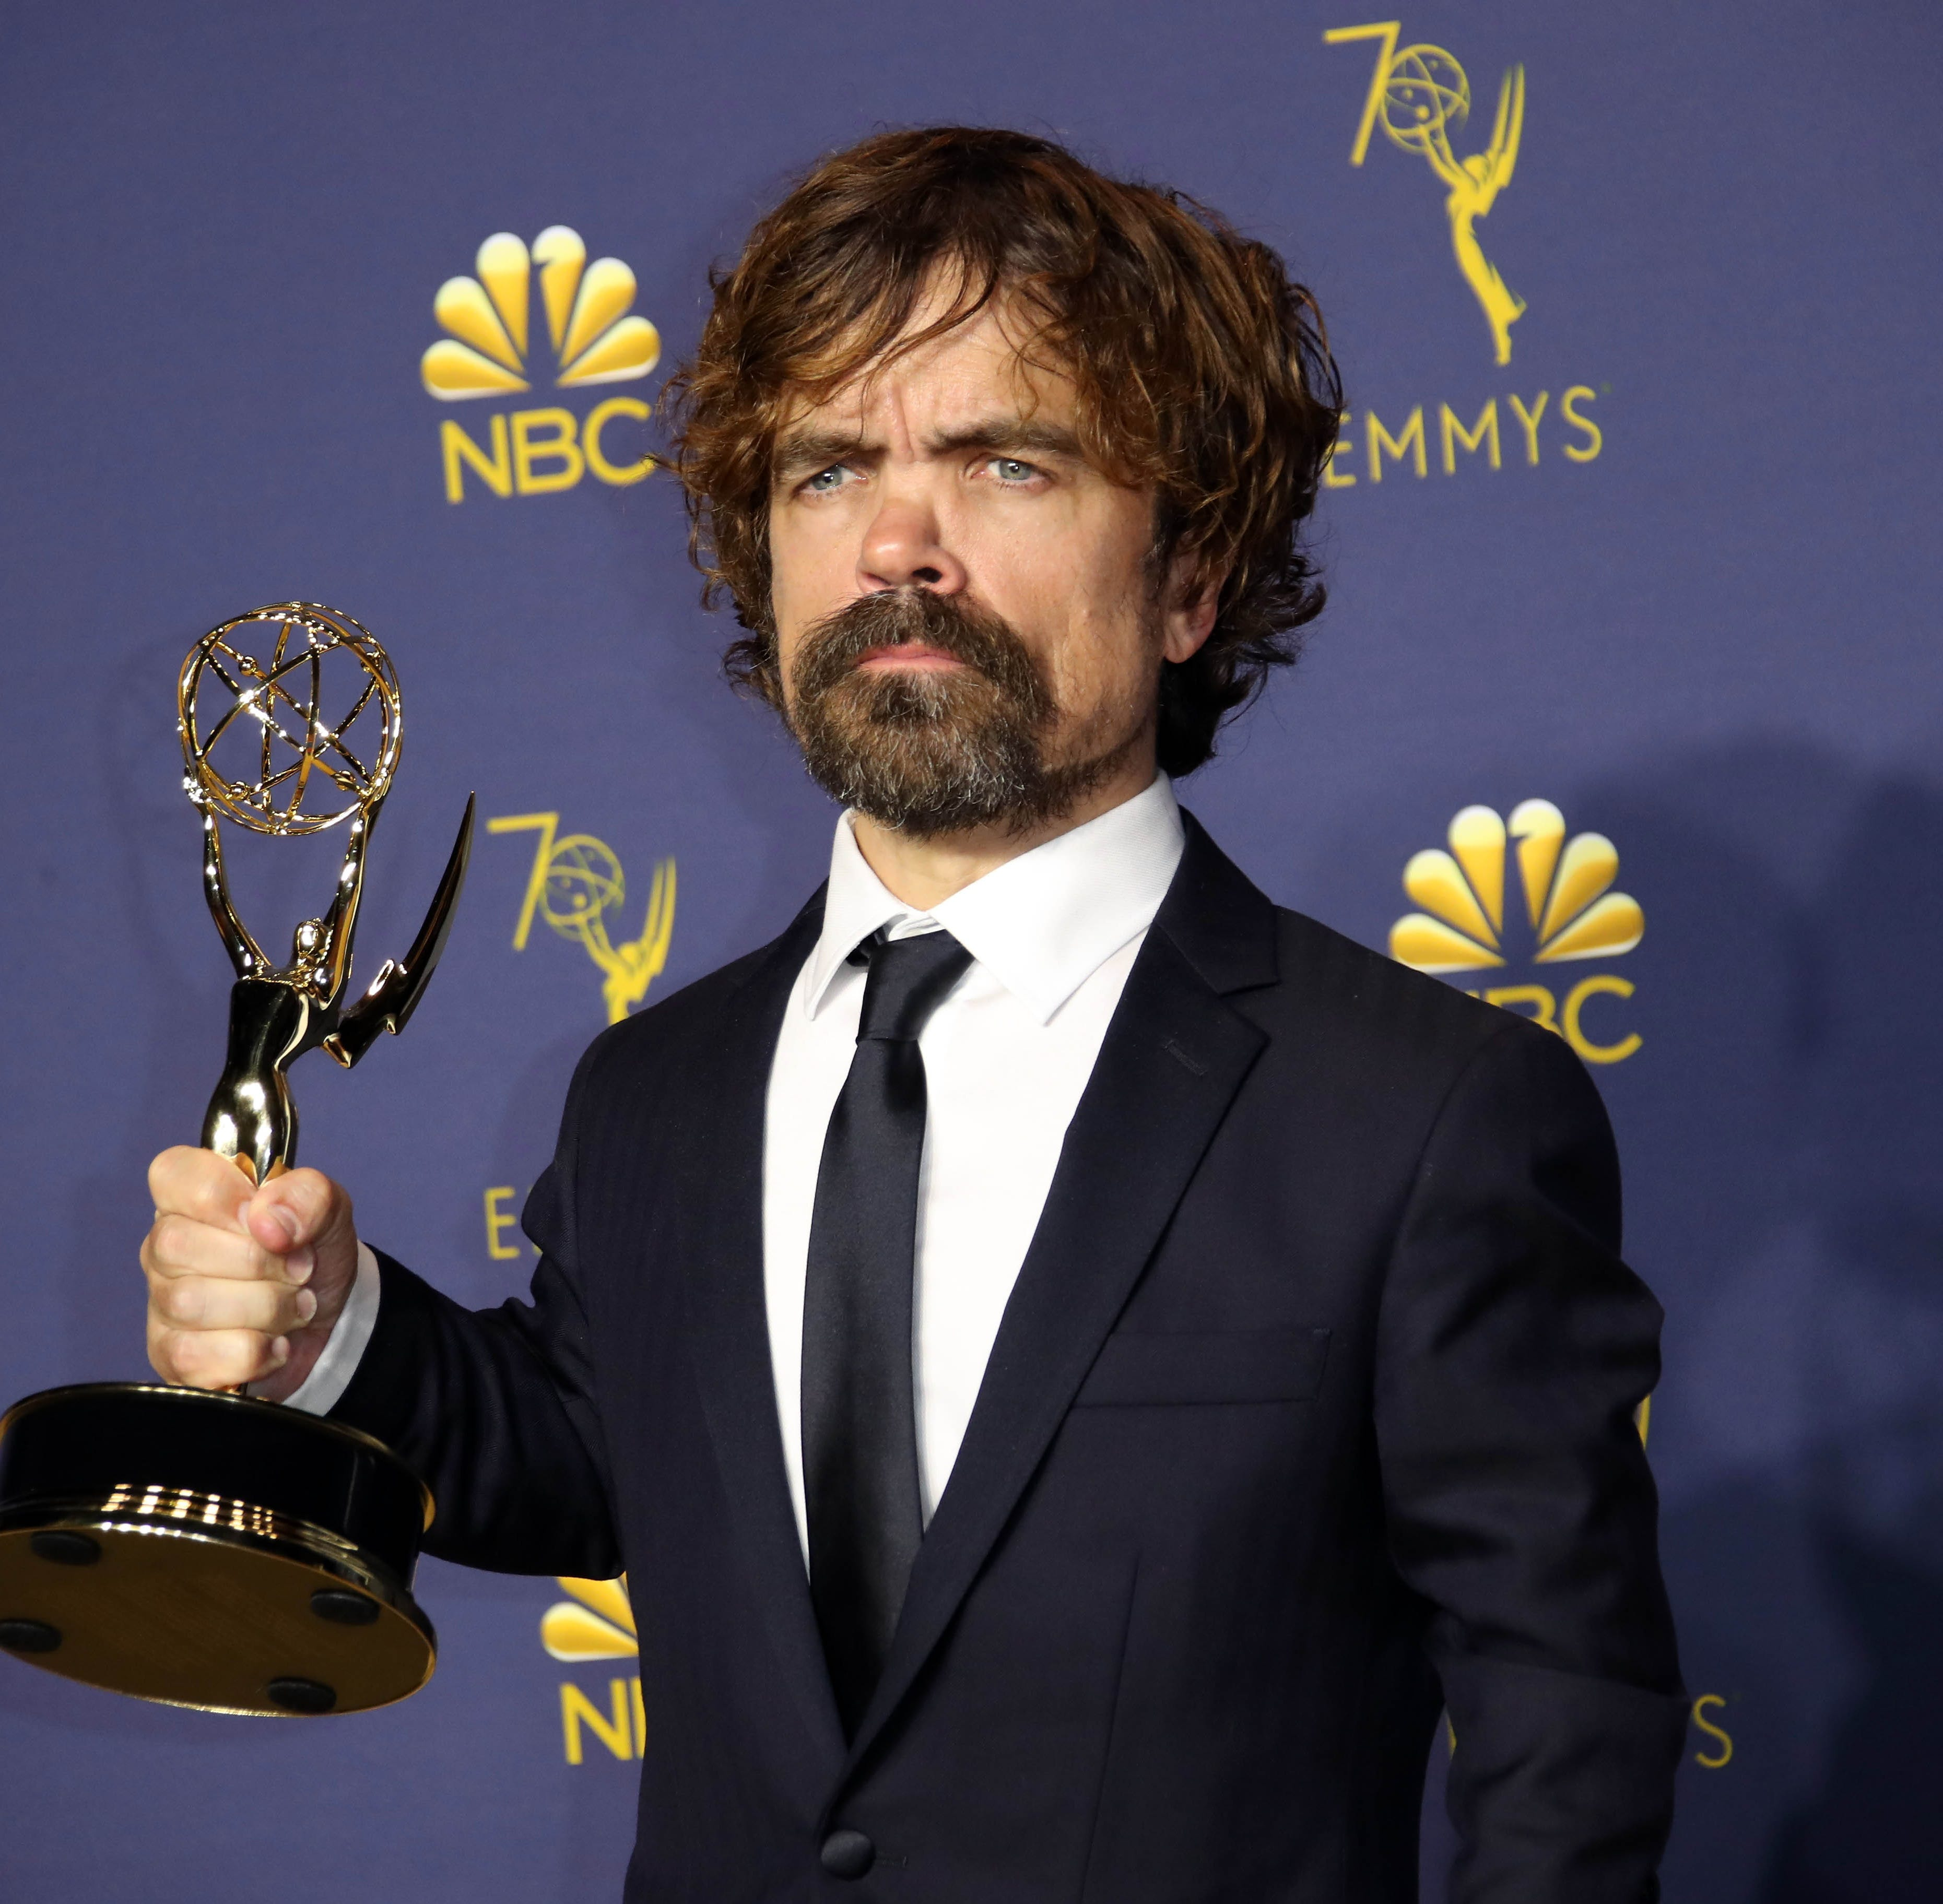 Morris County's Peter Dinklage wins Emmy for 'Game of Thrones'